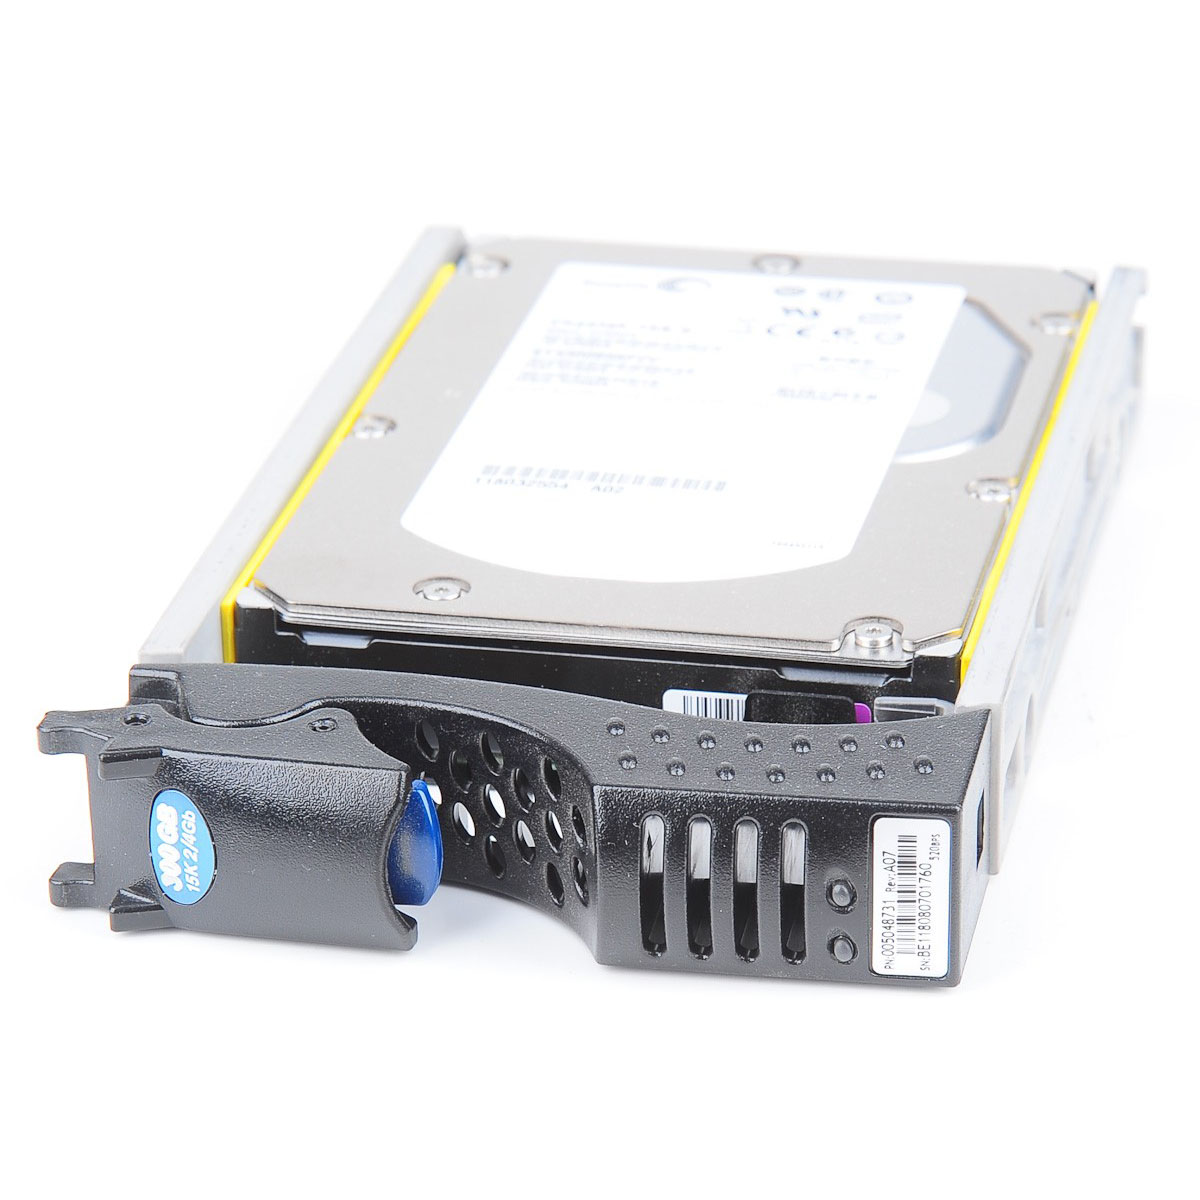 005048731 / CX-4G15-300 EMC 4Gb/s 300GB 15k RPM FC Hard Drive